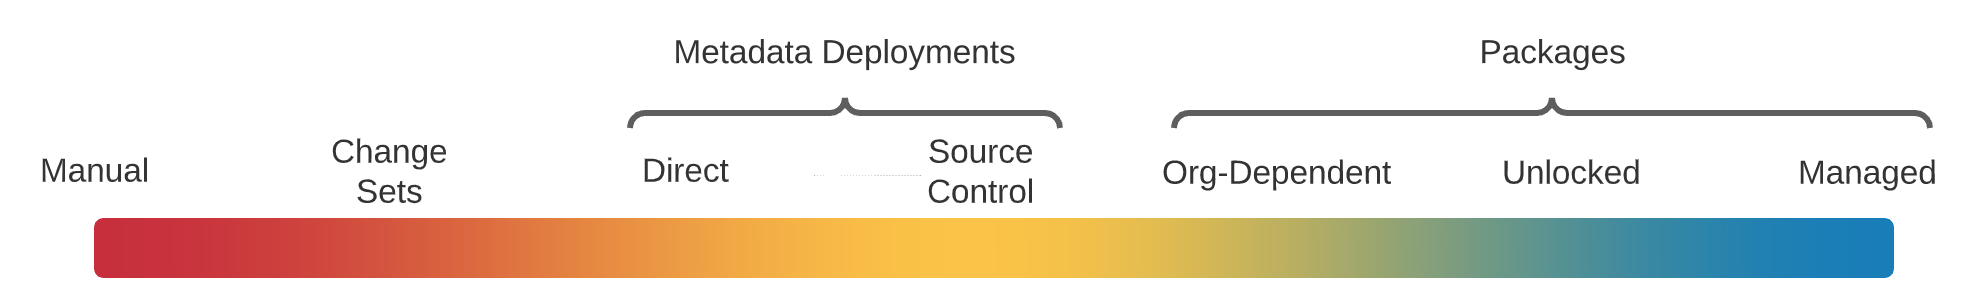 Spectrum with manual deployments as simplest choice and managed packages as most complex.